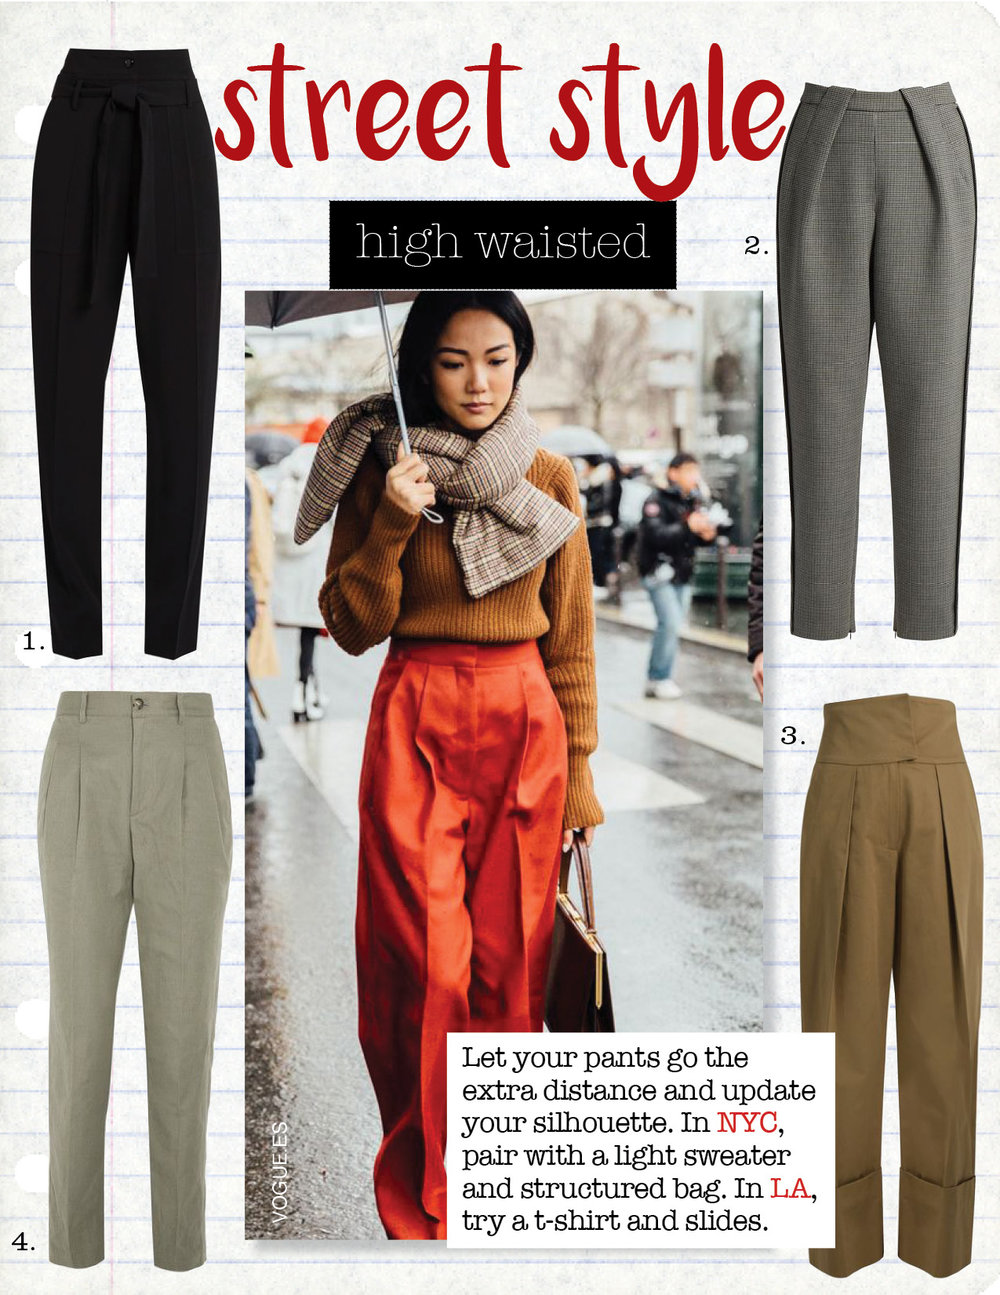 1. vanessa bruno espagny high-rise tapered-leg crepe trousers, $518,  matchesfashion.com  2. balenciaga high-waisted tapered-leg hound's-tooth trousers, $856,  matchesfashion.com  3. PREEN LINE TERRI HIGH-RISE COTTON GABARDINE TROUSERS, $381,  MATCHESFASHION.COM  4. A.P.C. LENA COTTO AND LINEN-BLEND TAPERED PANTS, $310,  NET-A-PORTER.COM